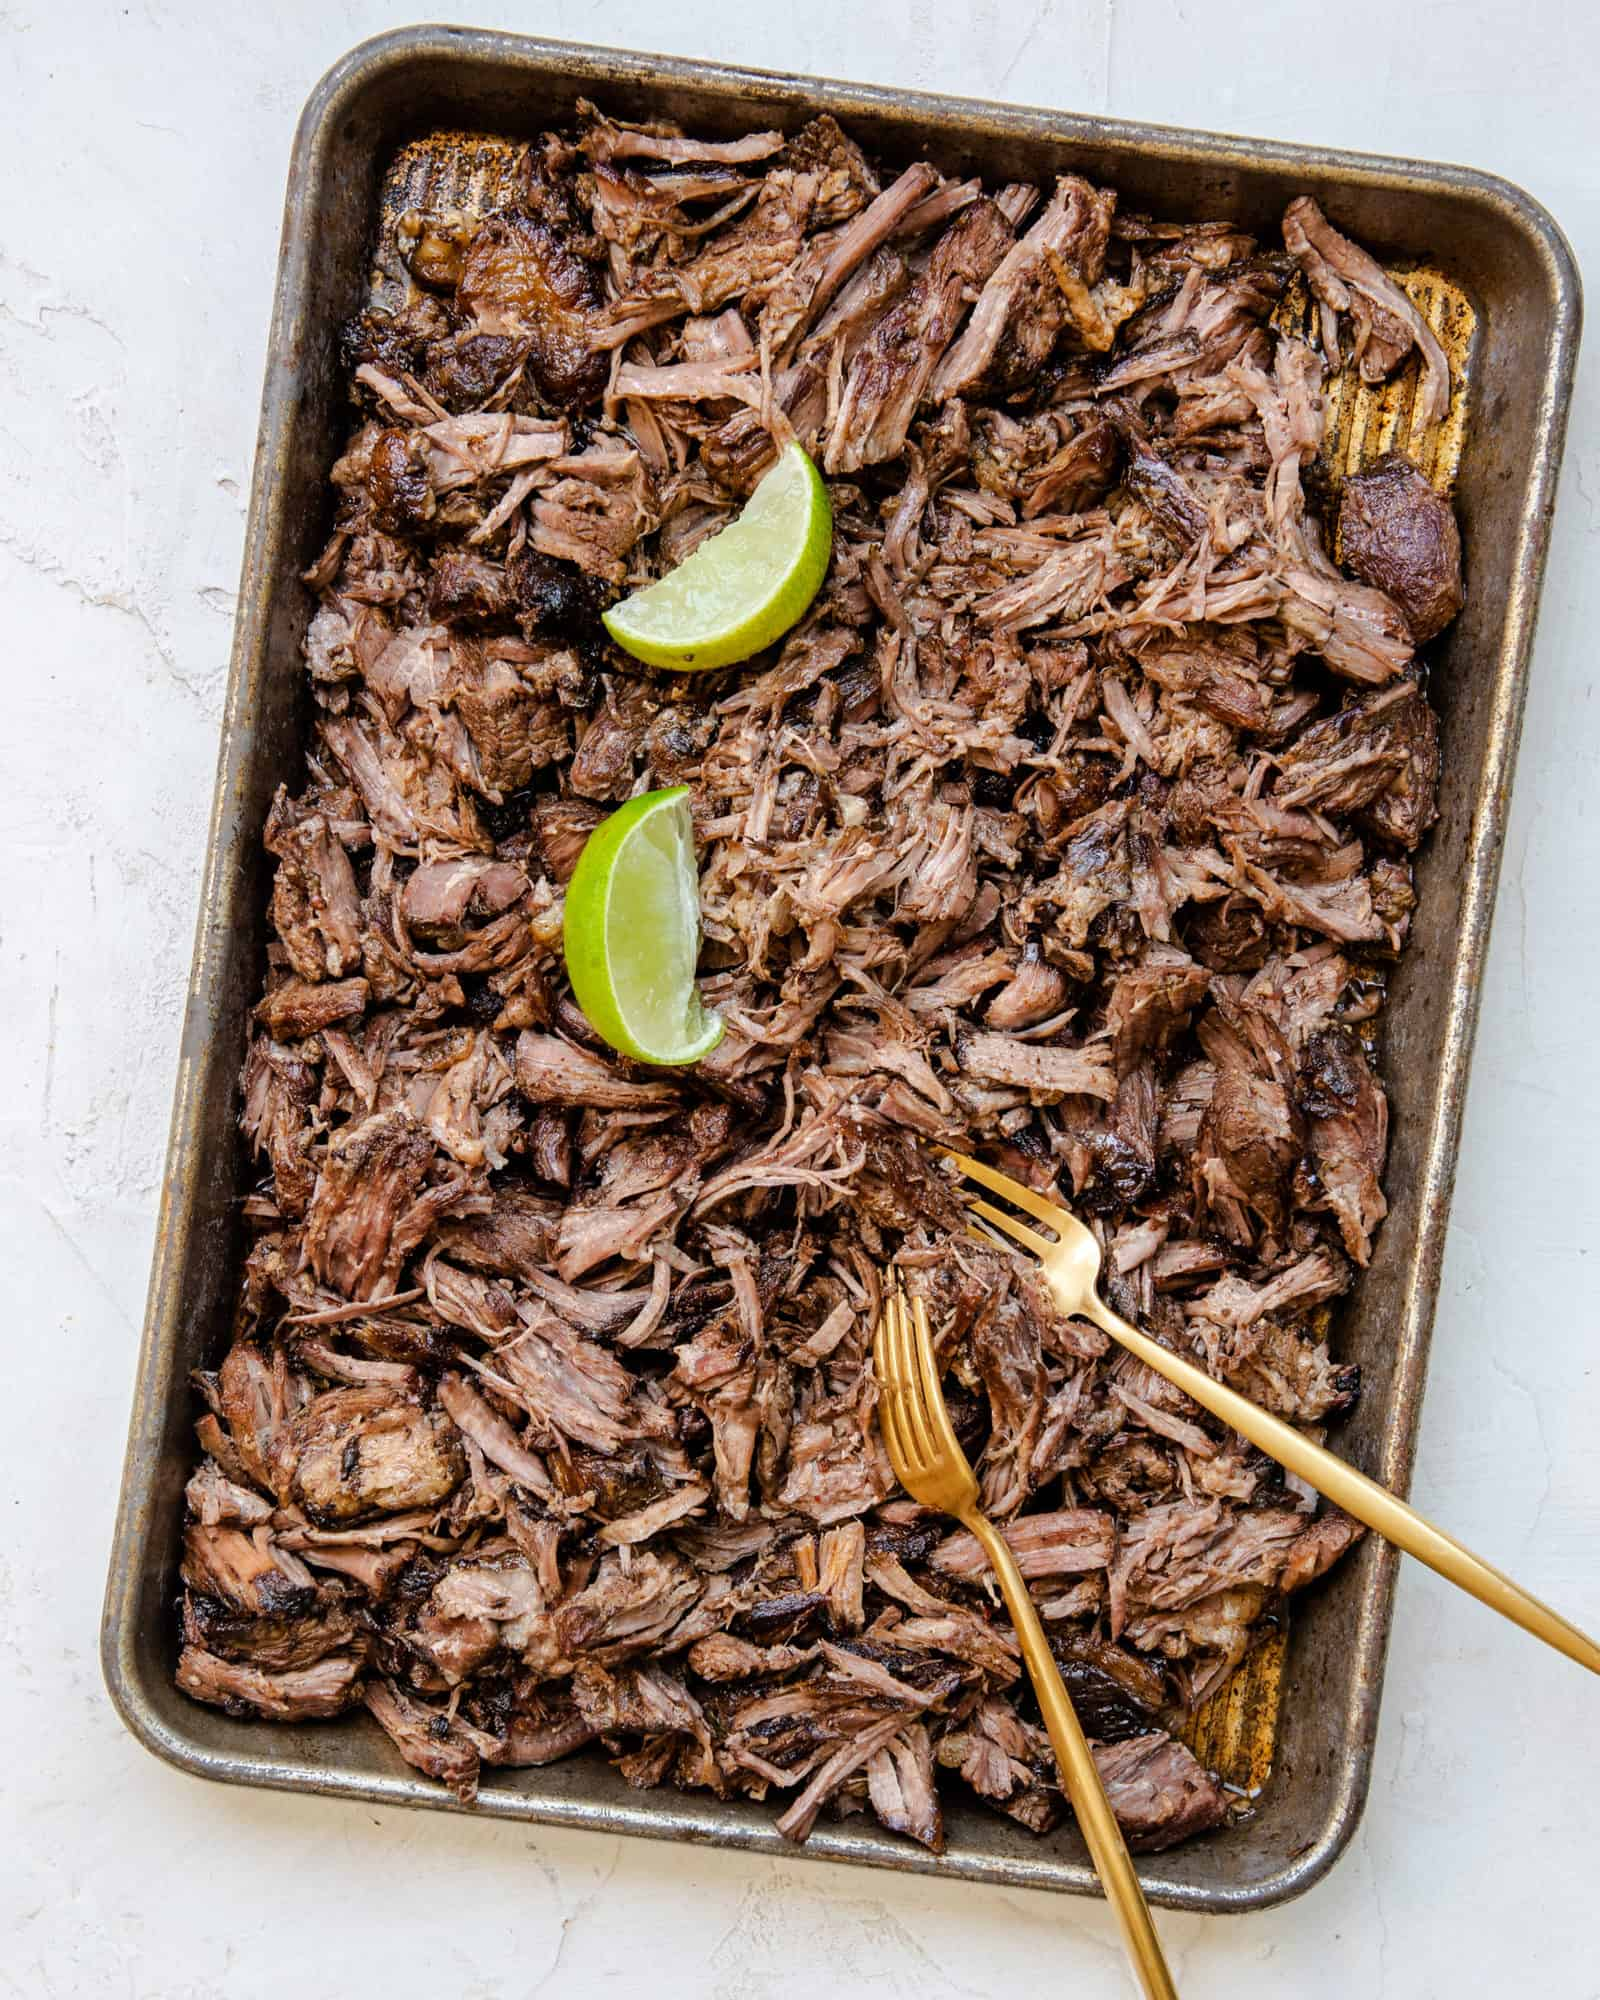 Sheet pan covered in shredded beef and limes with two gold forks